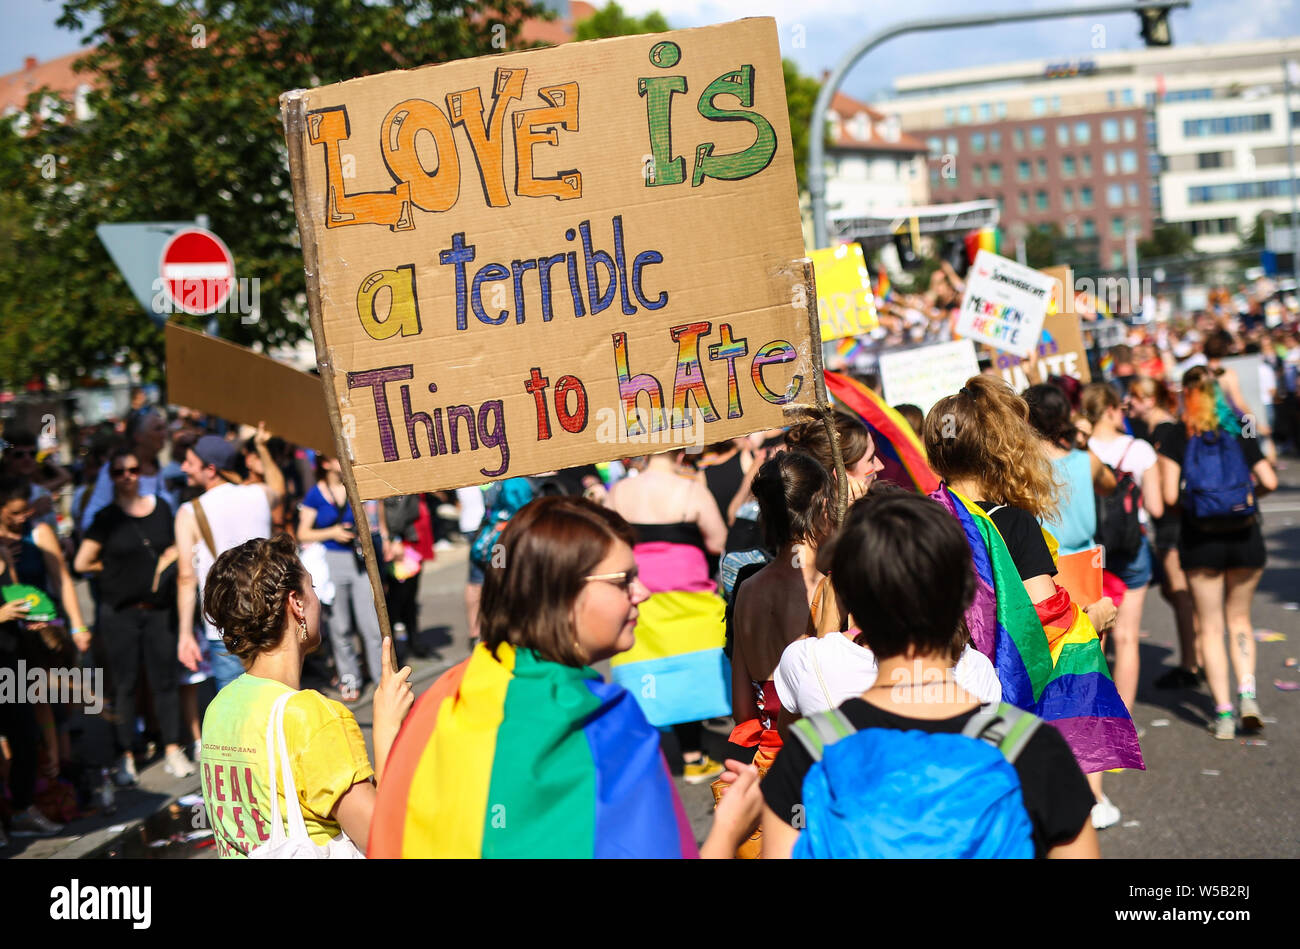 "Stuttgart, Germany. 27th July, 2019. Participants of the Christopher Street Day (CSD) parade walk through downtown and hold a poster with the inscription ""Love is a terrible thing to hate"". The political parade stands for the rights of gays, lesbians, bisexuals and transgender people under the motto ""Courage to Freedom"". Credit: Christoph Schmidt/dpa/Alamy Live News Stock Photo"